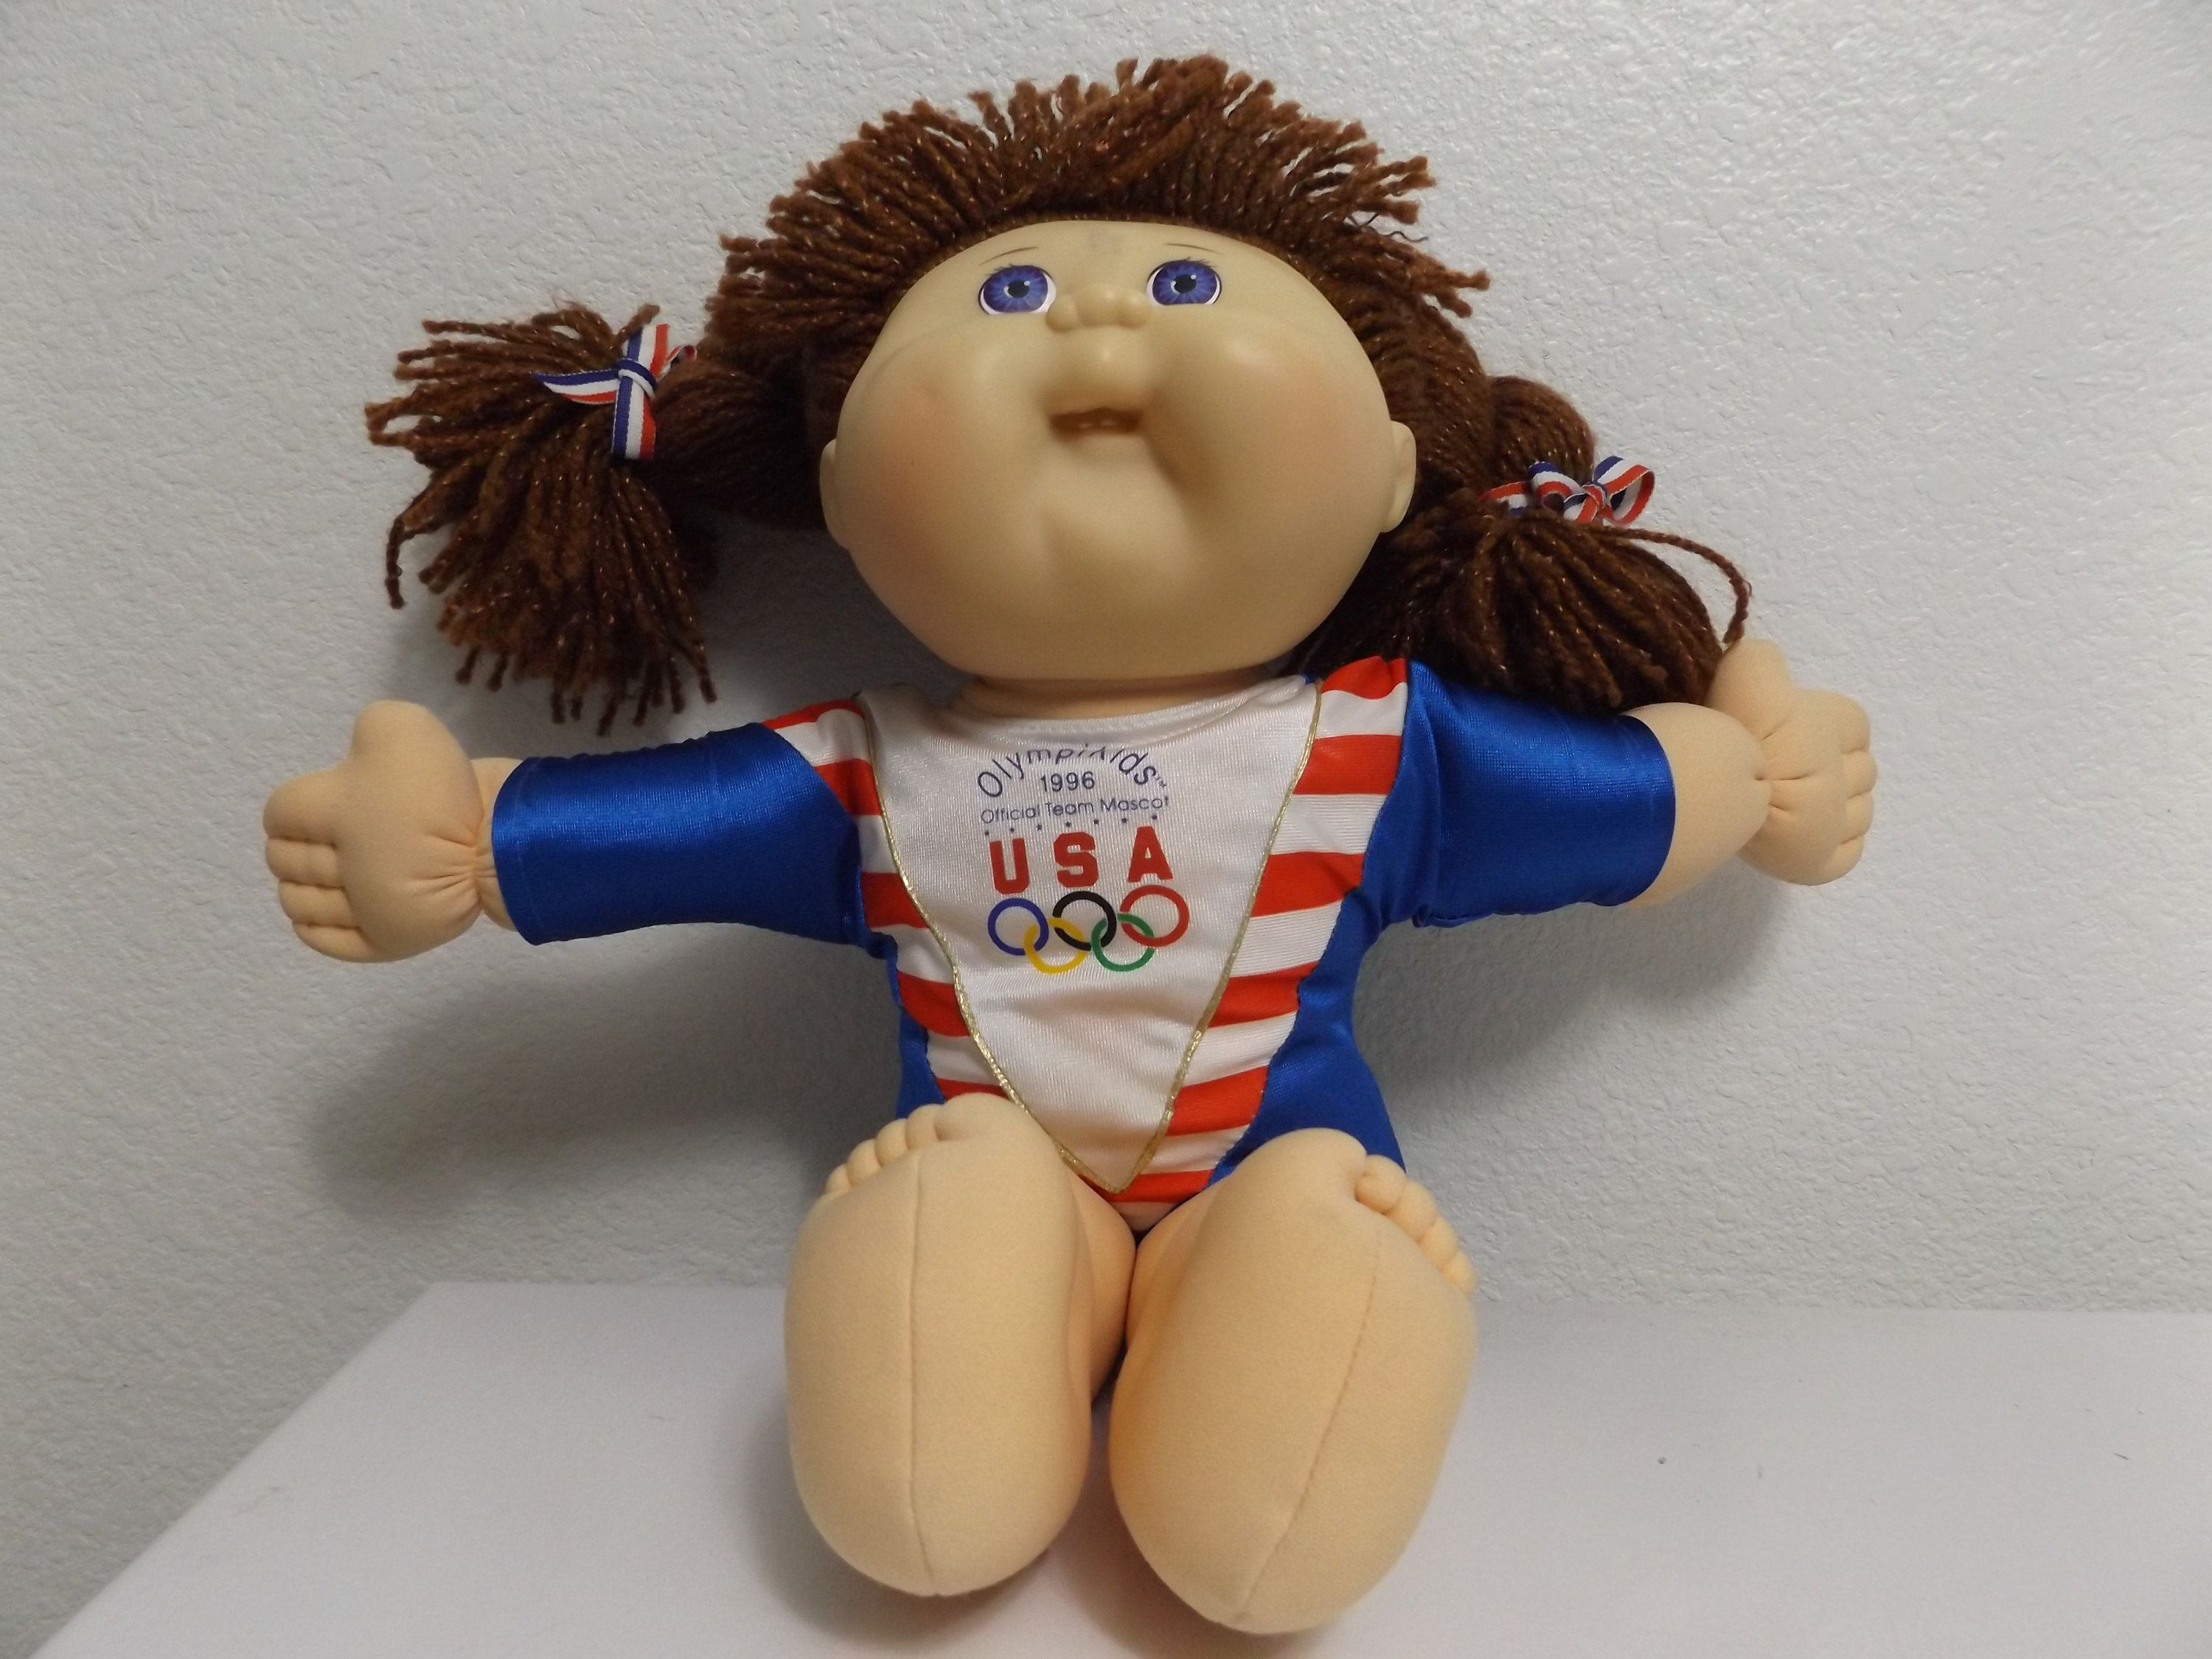 Vintage Cabbage Patch Olympic Doll 1996 Olympikids Official Etsy Cabbage Patch Yarn Braids Dolls